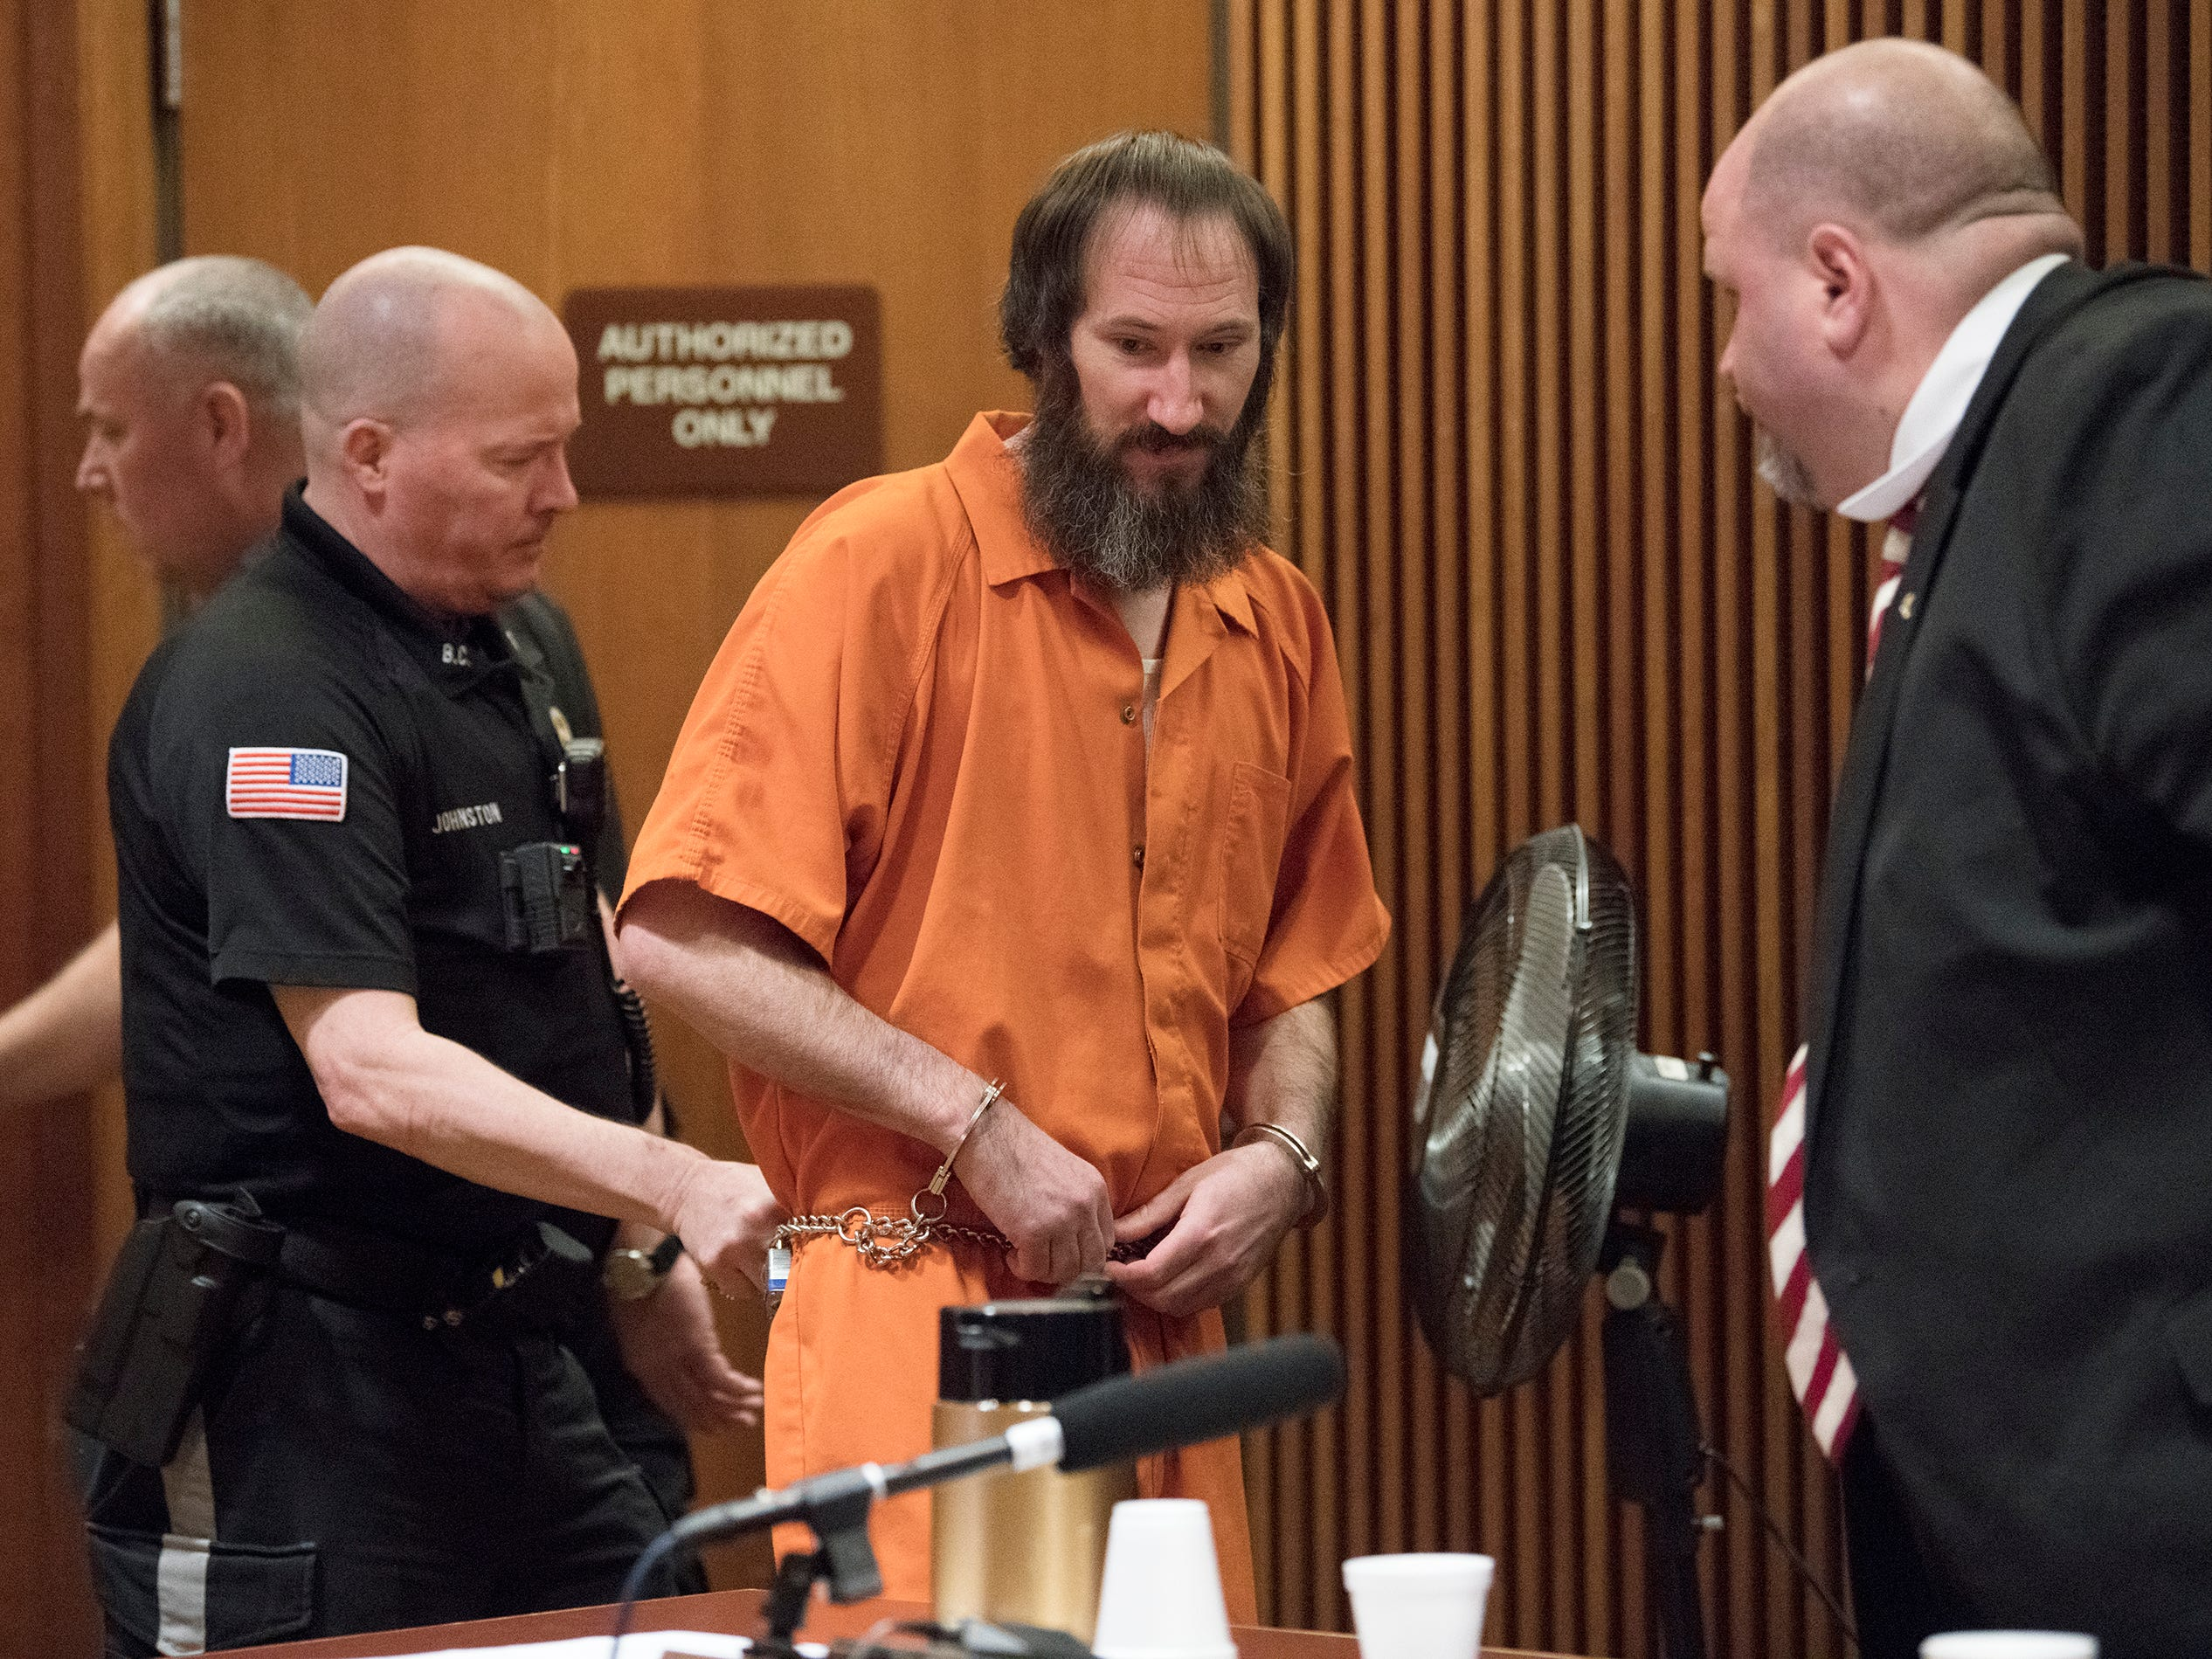 Johnny Bobbitt Jr. enters a Burlington County Superior Court courtroom to be sentenced on the charge of conspiracy to commit theft by deception on Friday, April 12, 2019.  Bobbitt received a 5-year Drug Court probationary term, including long-term in-patient treatment, for his role in a GoFundMe scam.